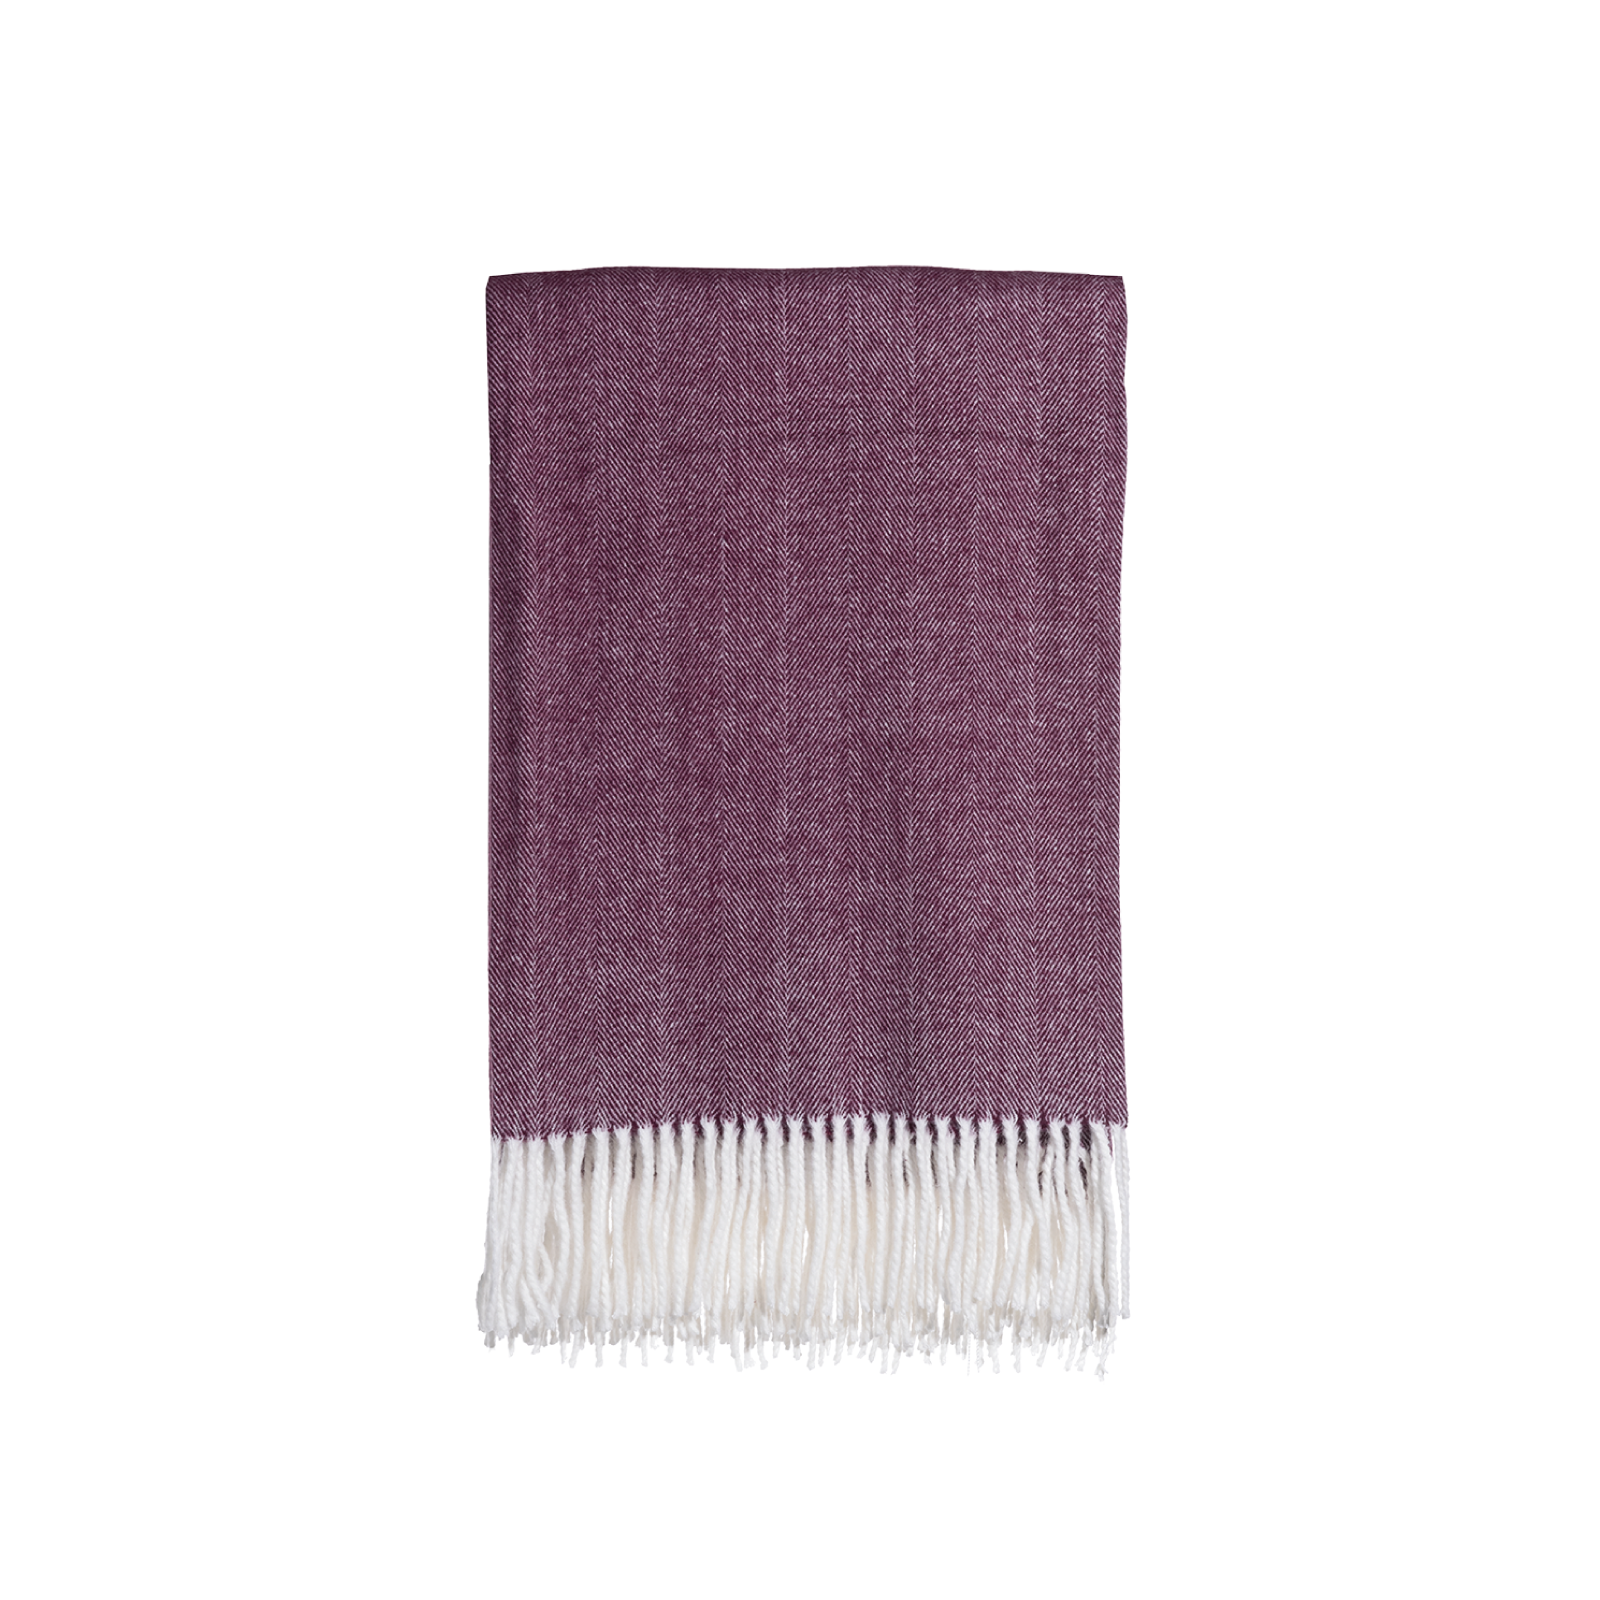 Gemma Throw in Pomegranate Herringbone